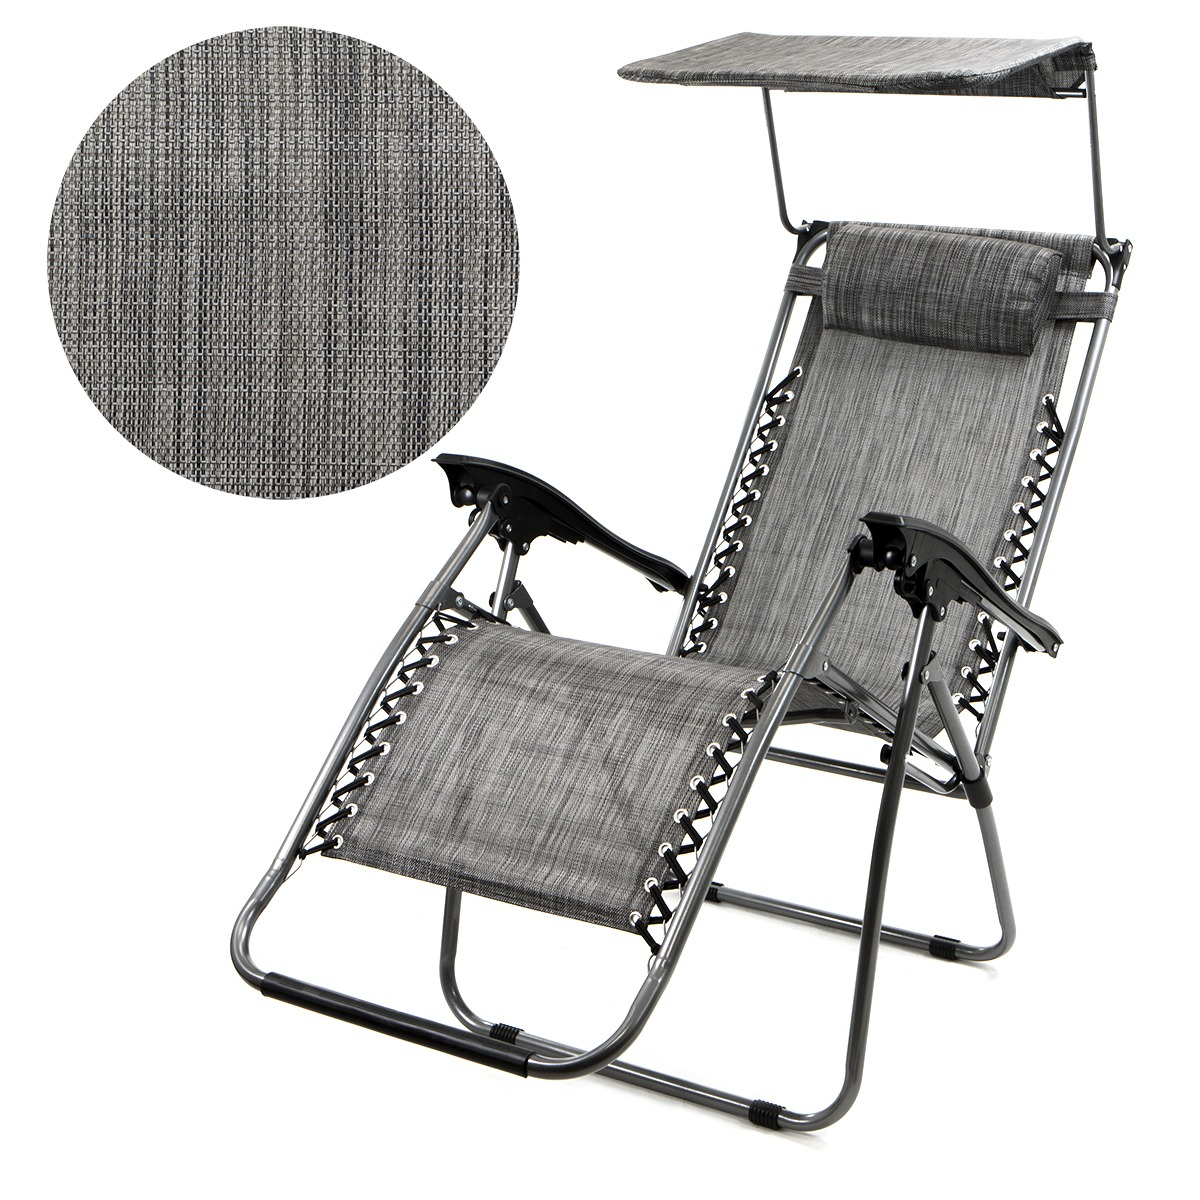 patio zero gravity chair folding lounge with canopy shade u0026 cup holder outdoor yard beach